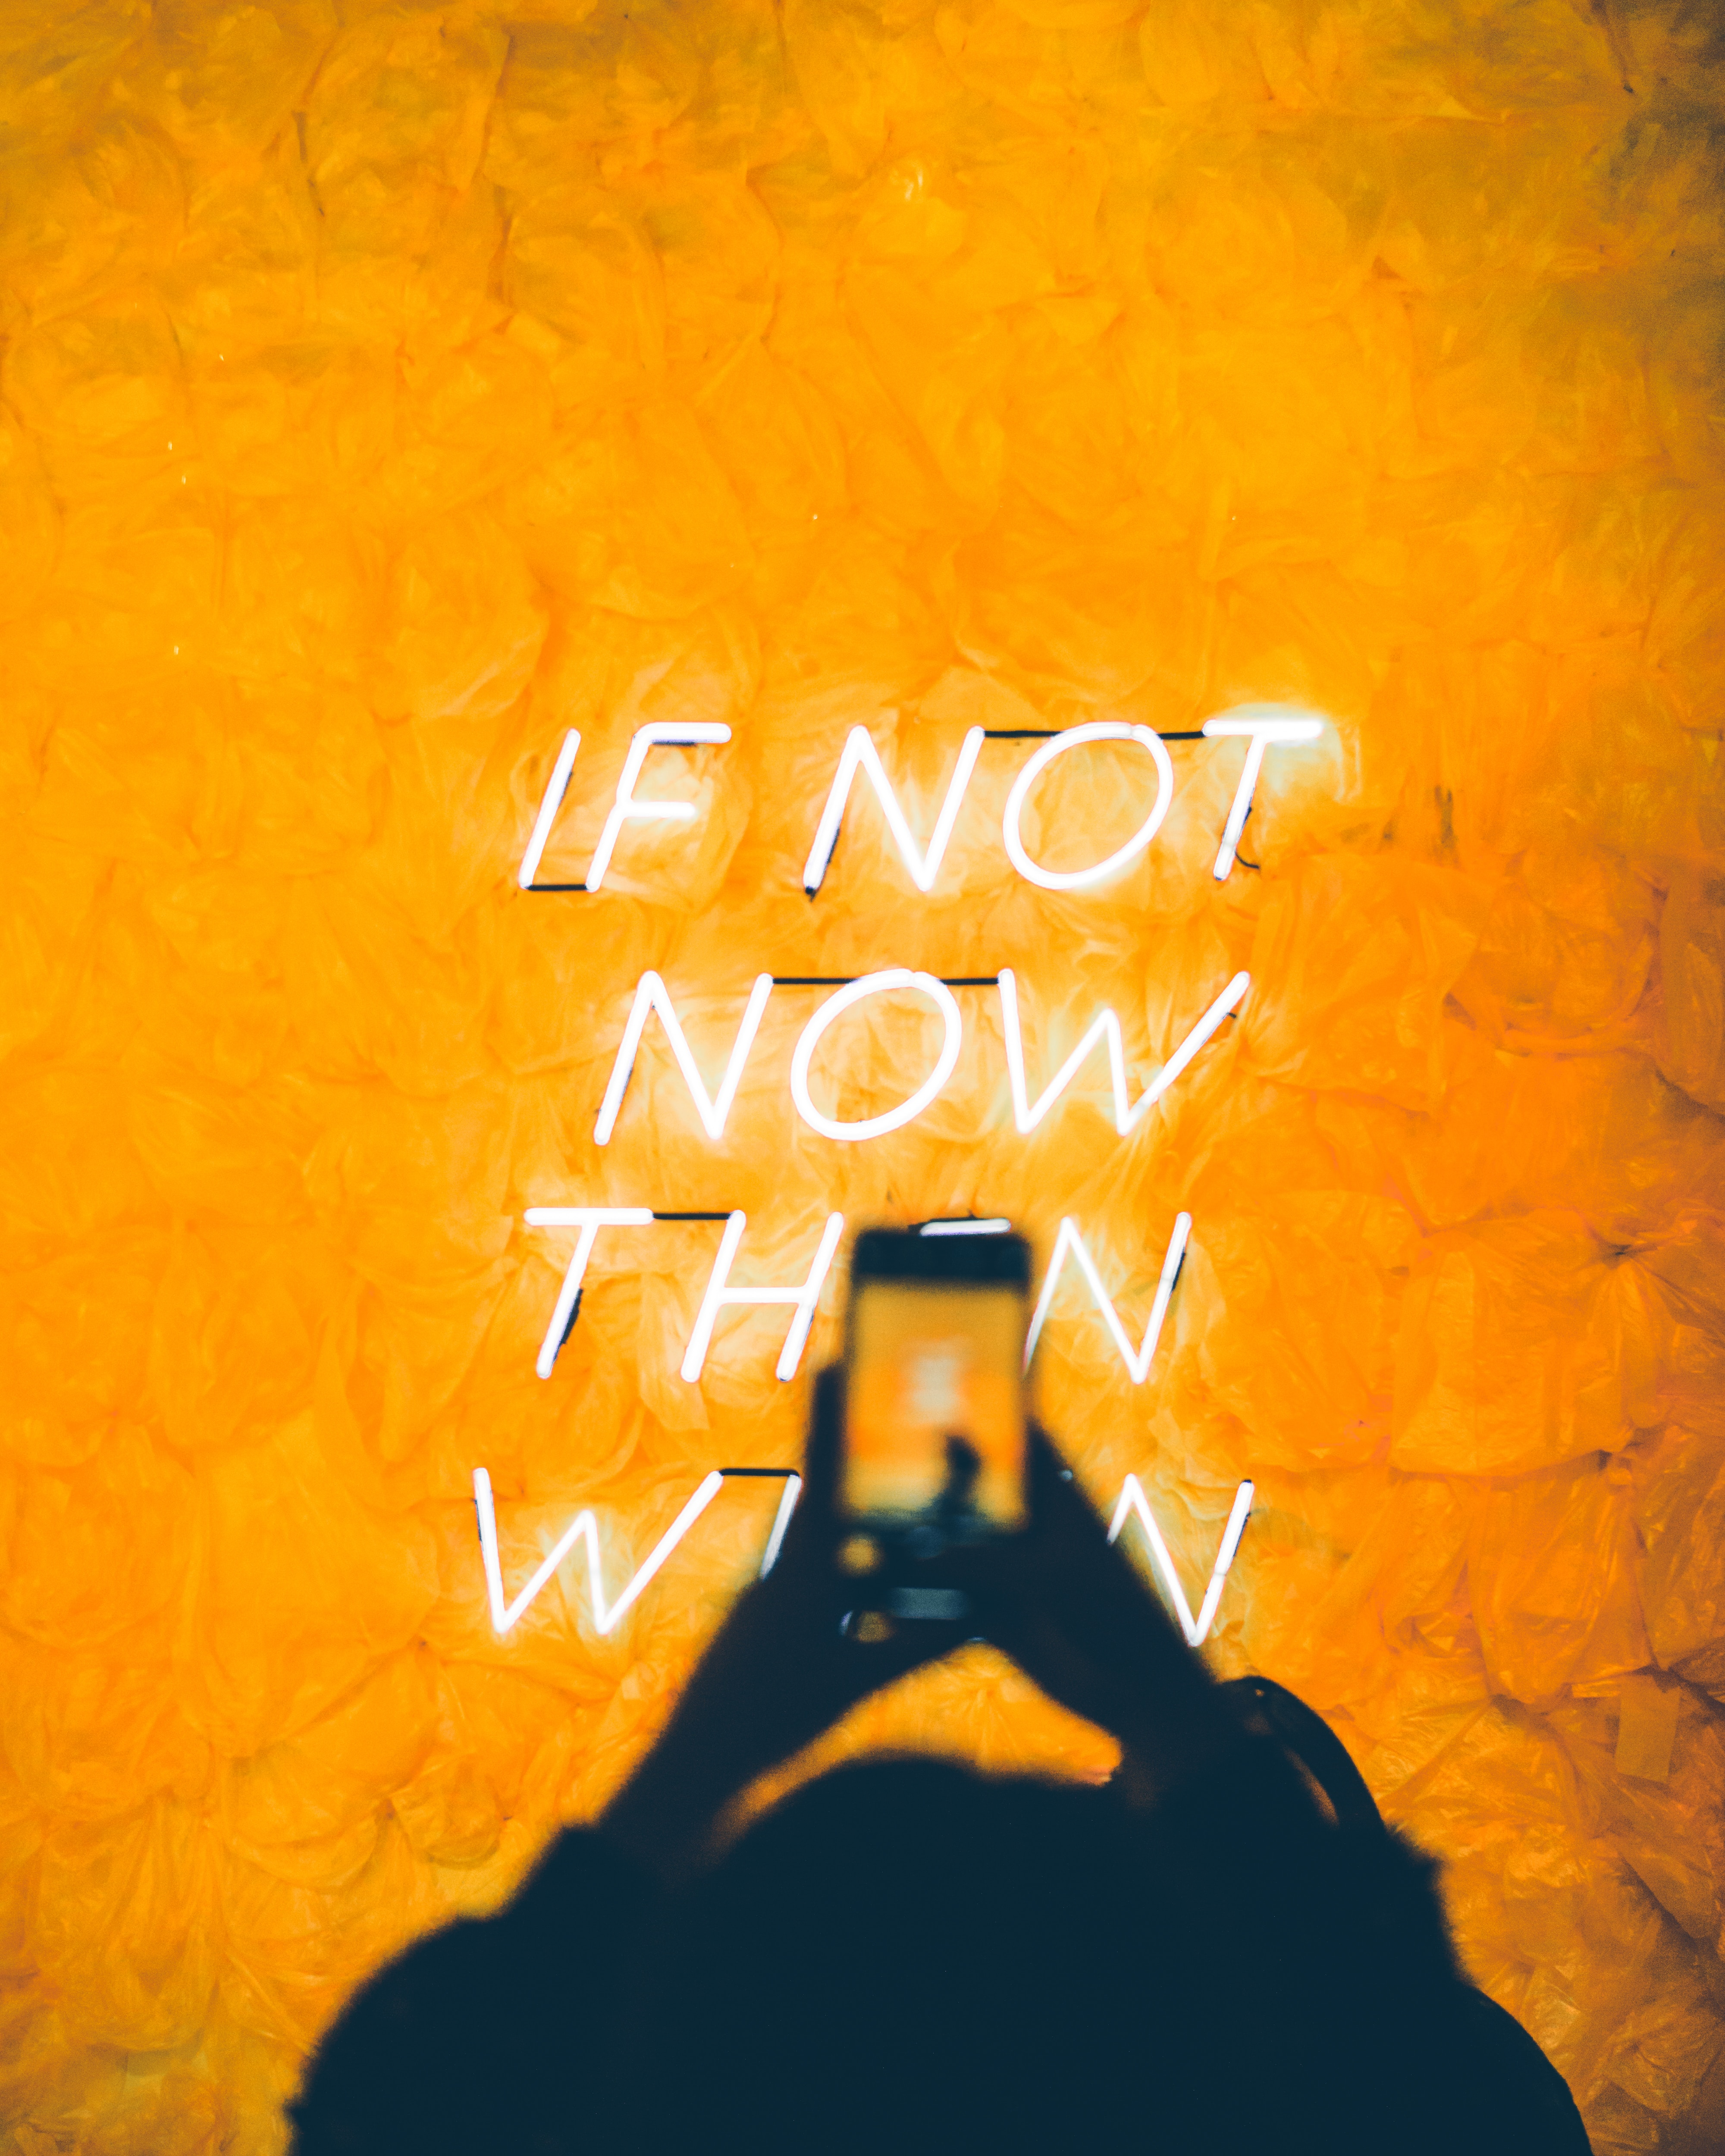 140144 download wallpaper Neon, Words, Shine, Light, Glow, Inscription, Text screensavers and pictures for free